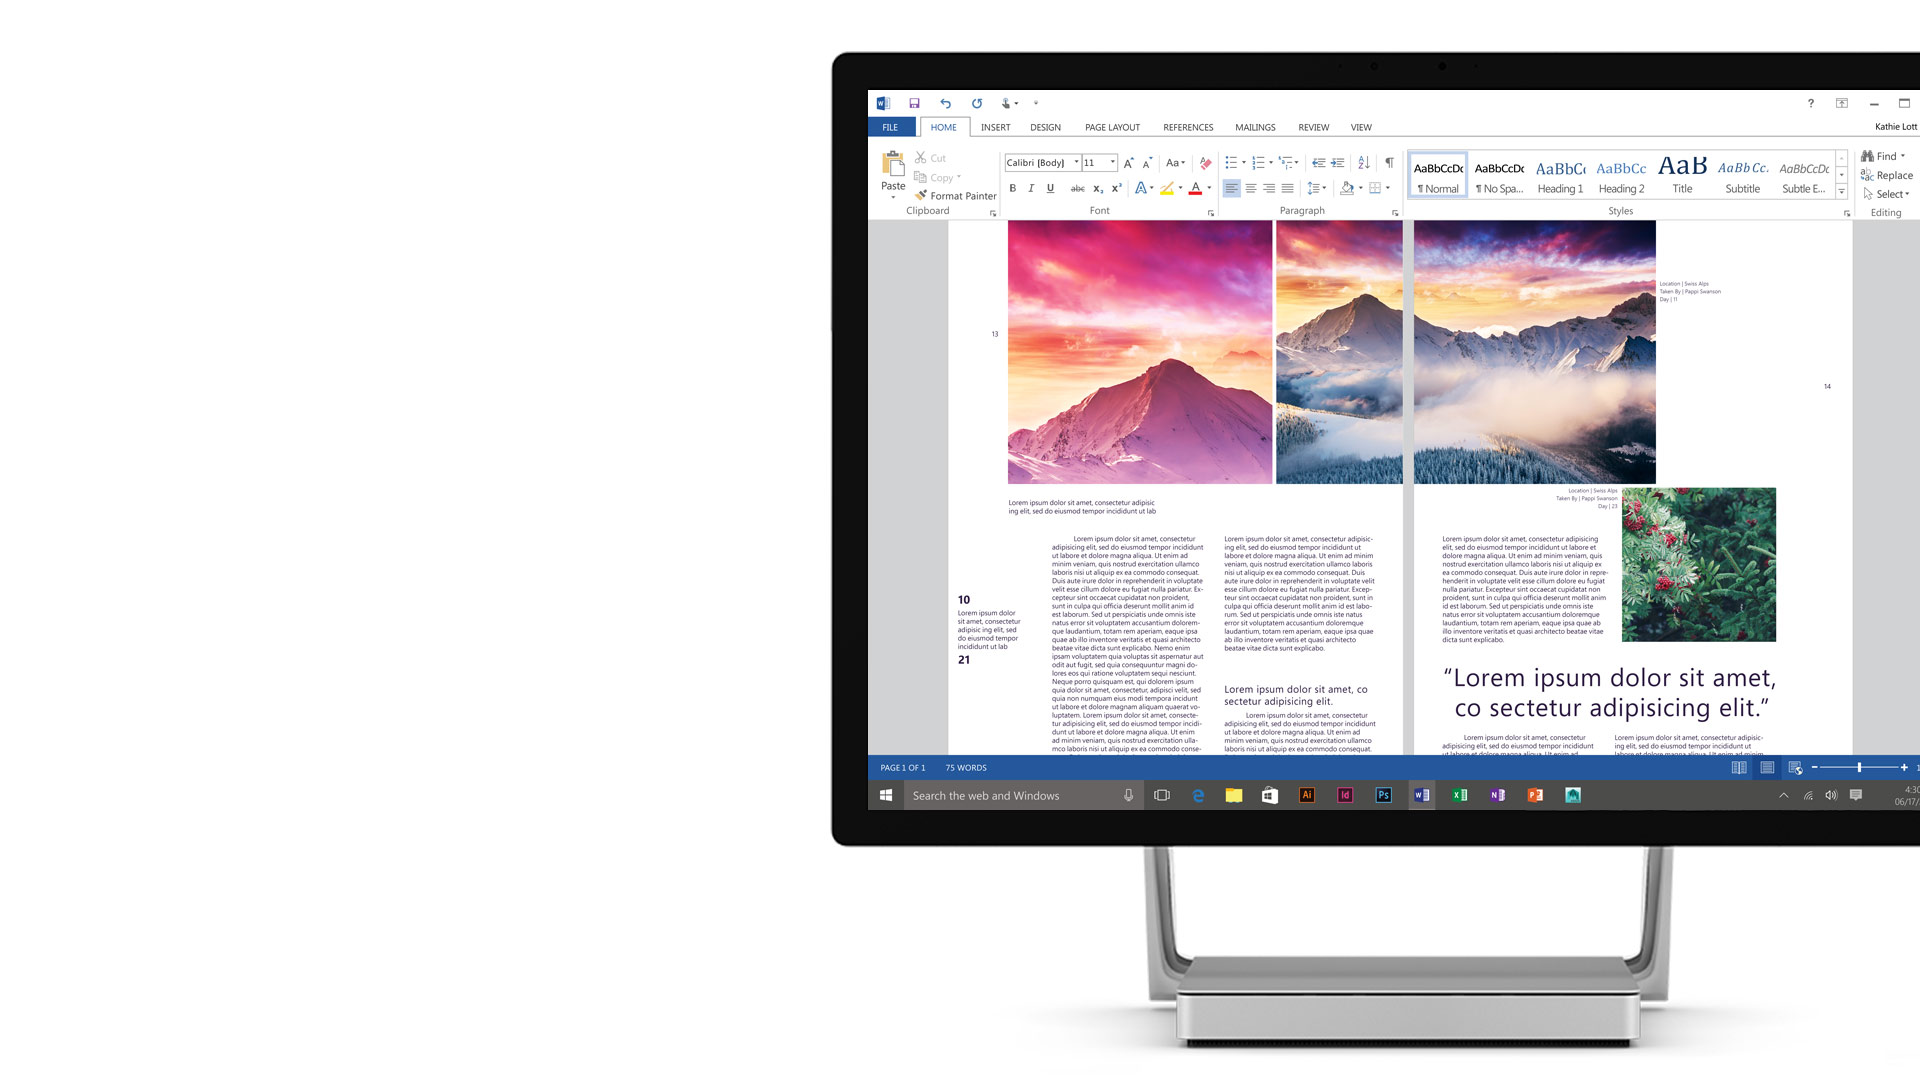 Microsoft Word open on the Surface Studio display